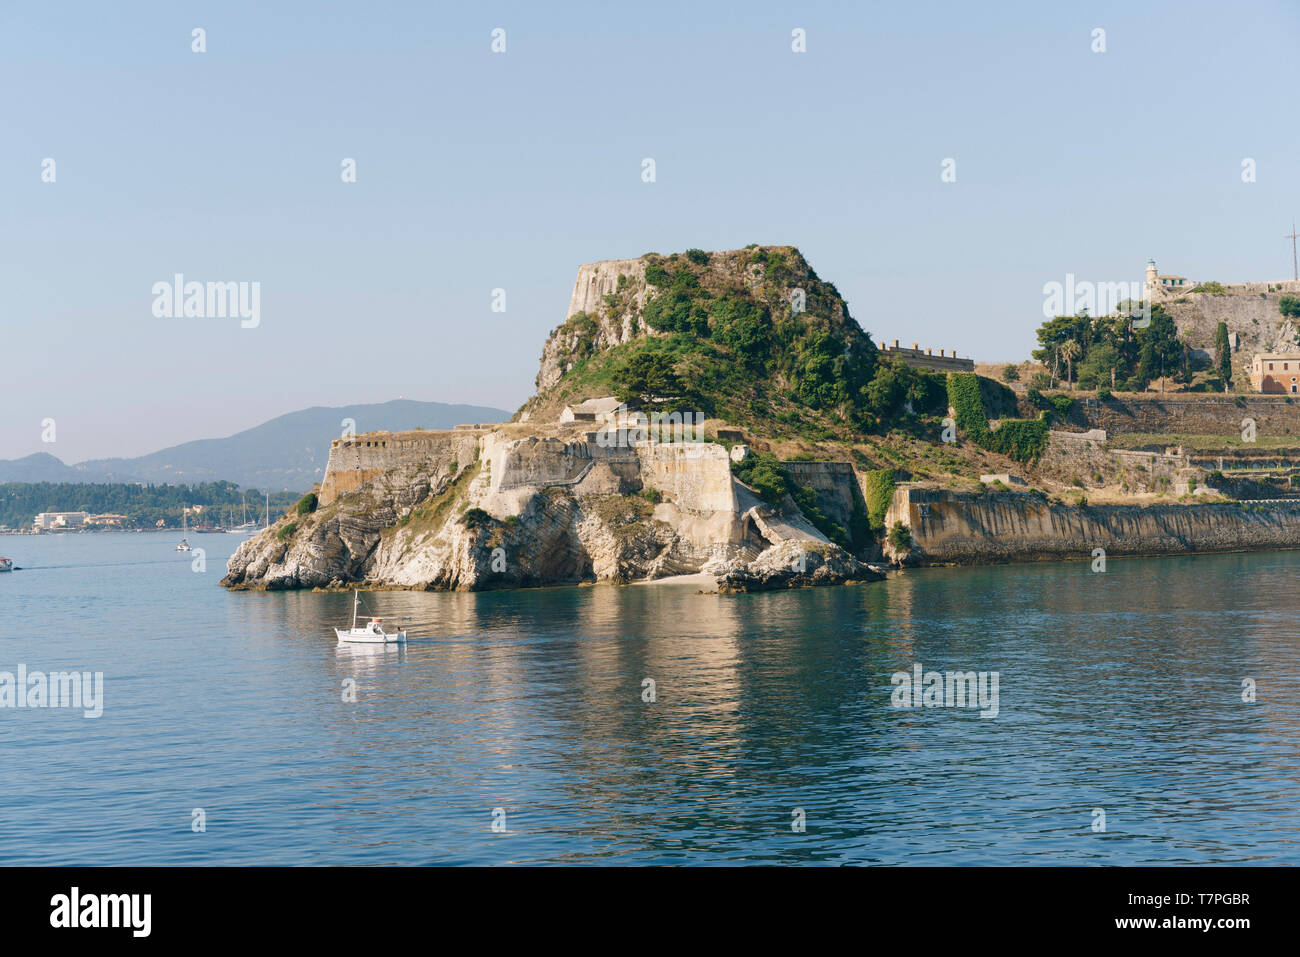 The old fortress of Corfu, built by the Venetians in the early 15th century. Stock Photo